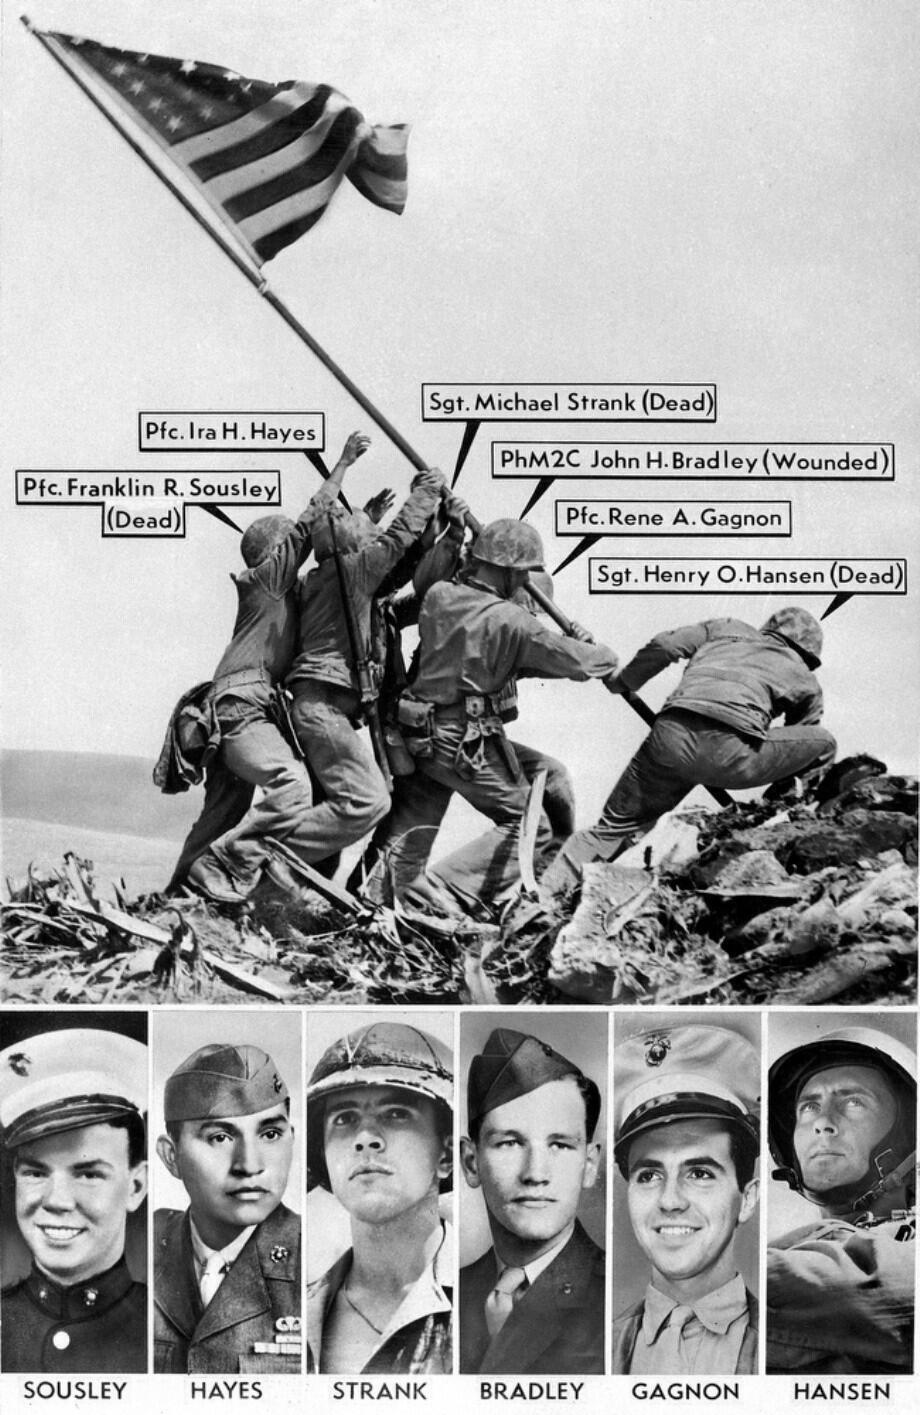 The men who raised the flag on Iwo Jima in Joe Rosenthal's iconic photo from 1945 http://t.co/WBm53JOGRs